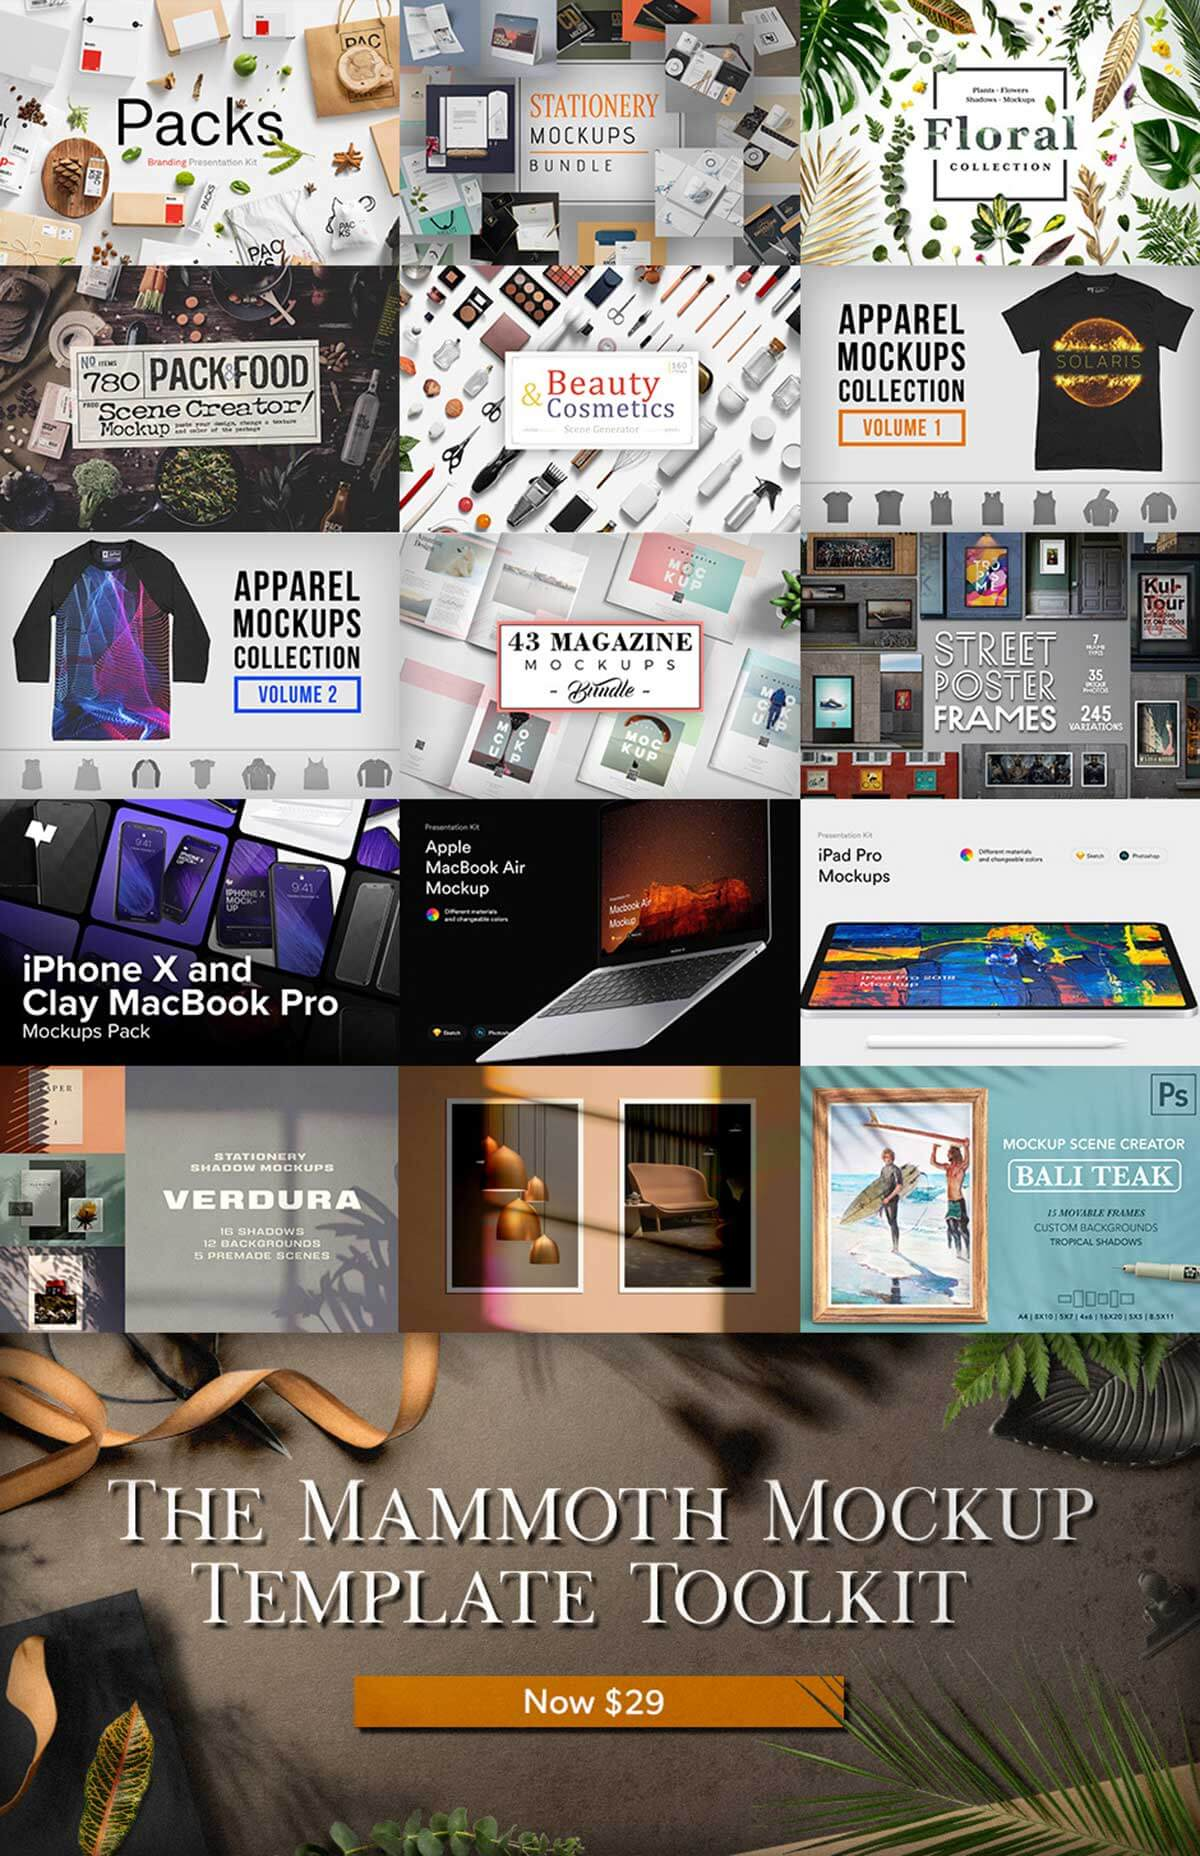 The Mammoth Mockup Template Toolkit (Rerun)